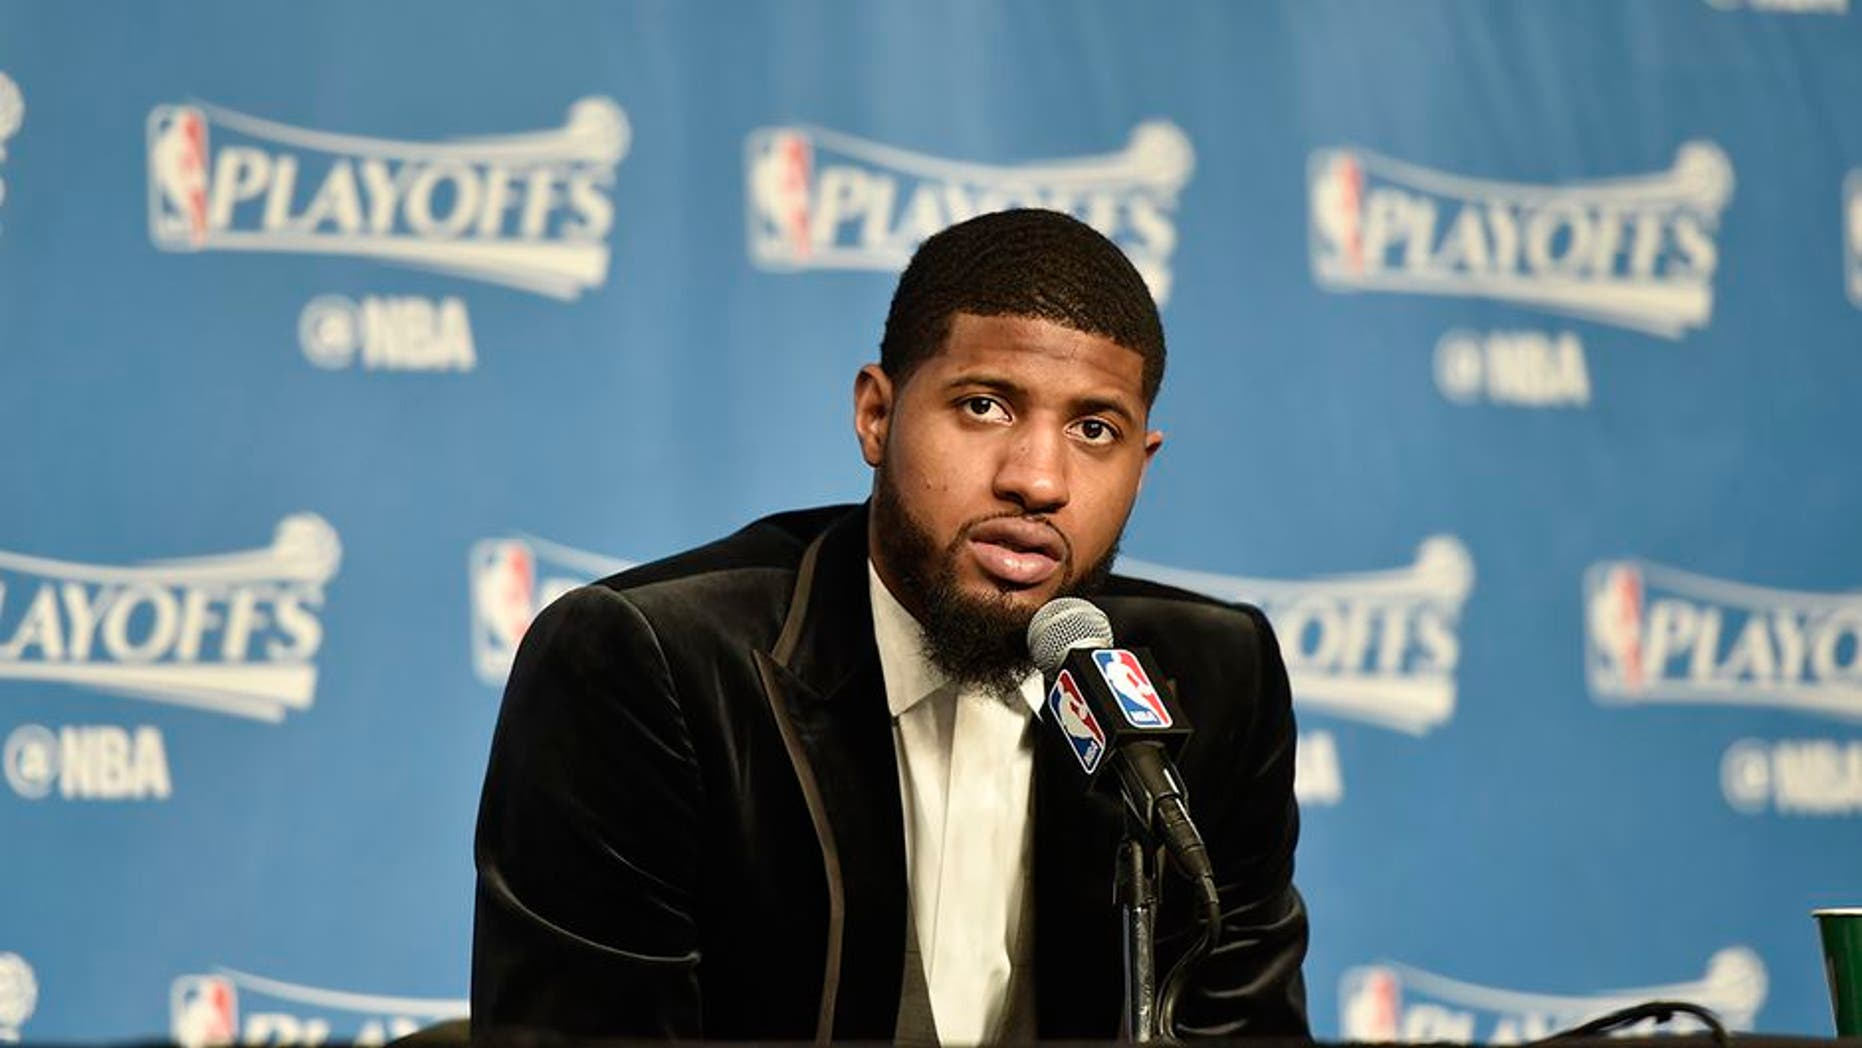 CLEVELAND, OH - APRIL 15: Paul George #13 of the Indiana Pacers speaks to the media after a game against the Cleveland Cavaliers in Round One of the Eastern Conference Playoffs during the 2017 NBA Playoffs on April 15, 2017 at Quicken Loans Arena in Cleveland, Ohio. NOTE TO USER: User expressly acknowledges and agrees that, by downloading and/or using this photograph, user is consenting to the terms and conditions of the Getty Images License Agreement. Mandatory Copyright Notice: Copyright 2017 NBAE (Photo by David Liam Kyle/NBAE via Getty Images)